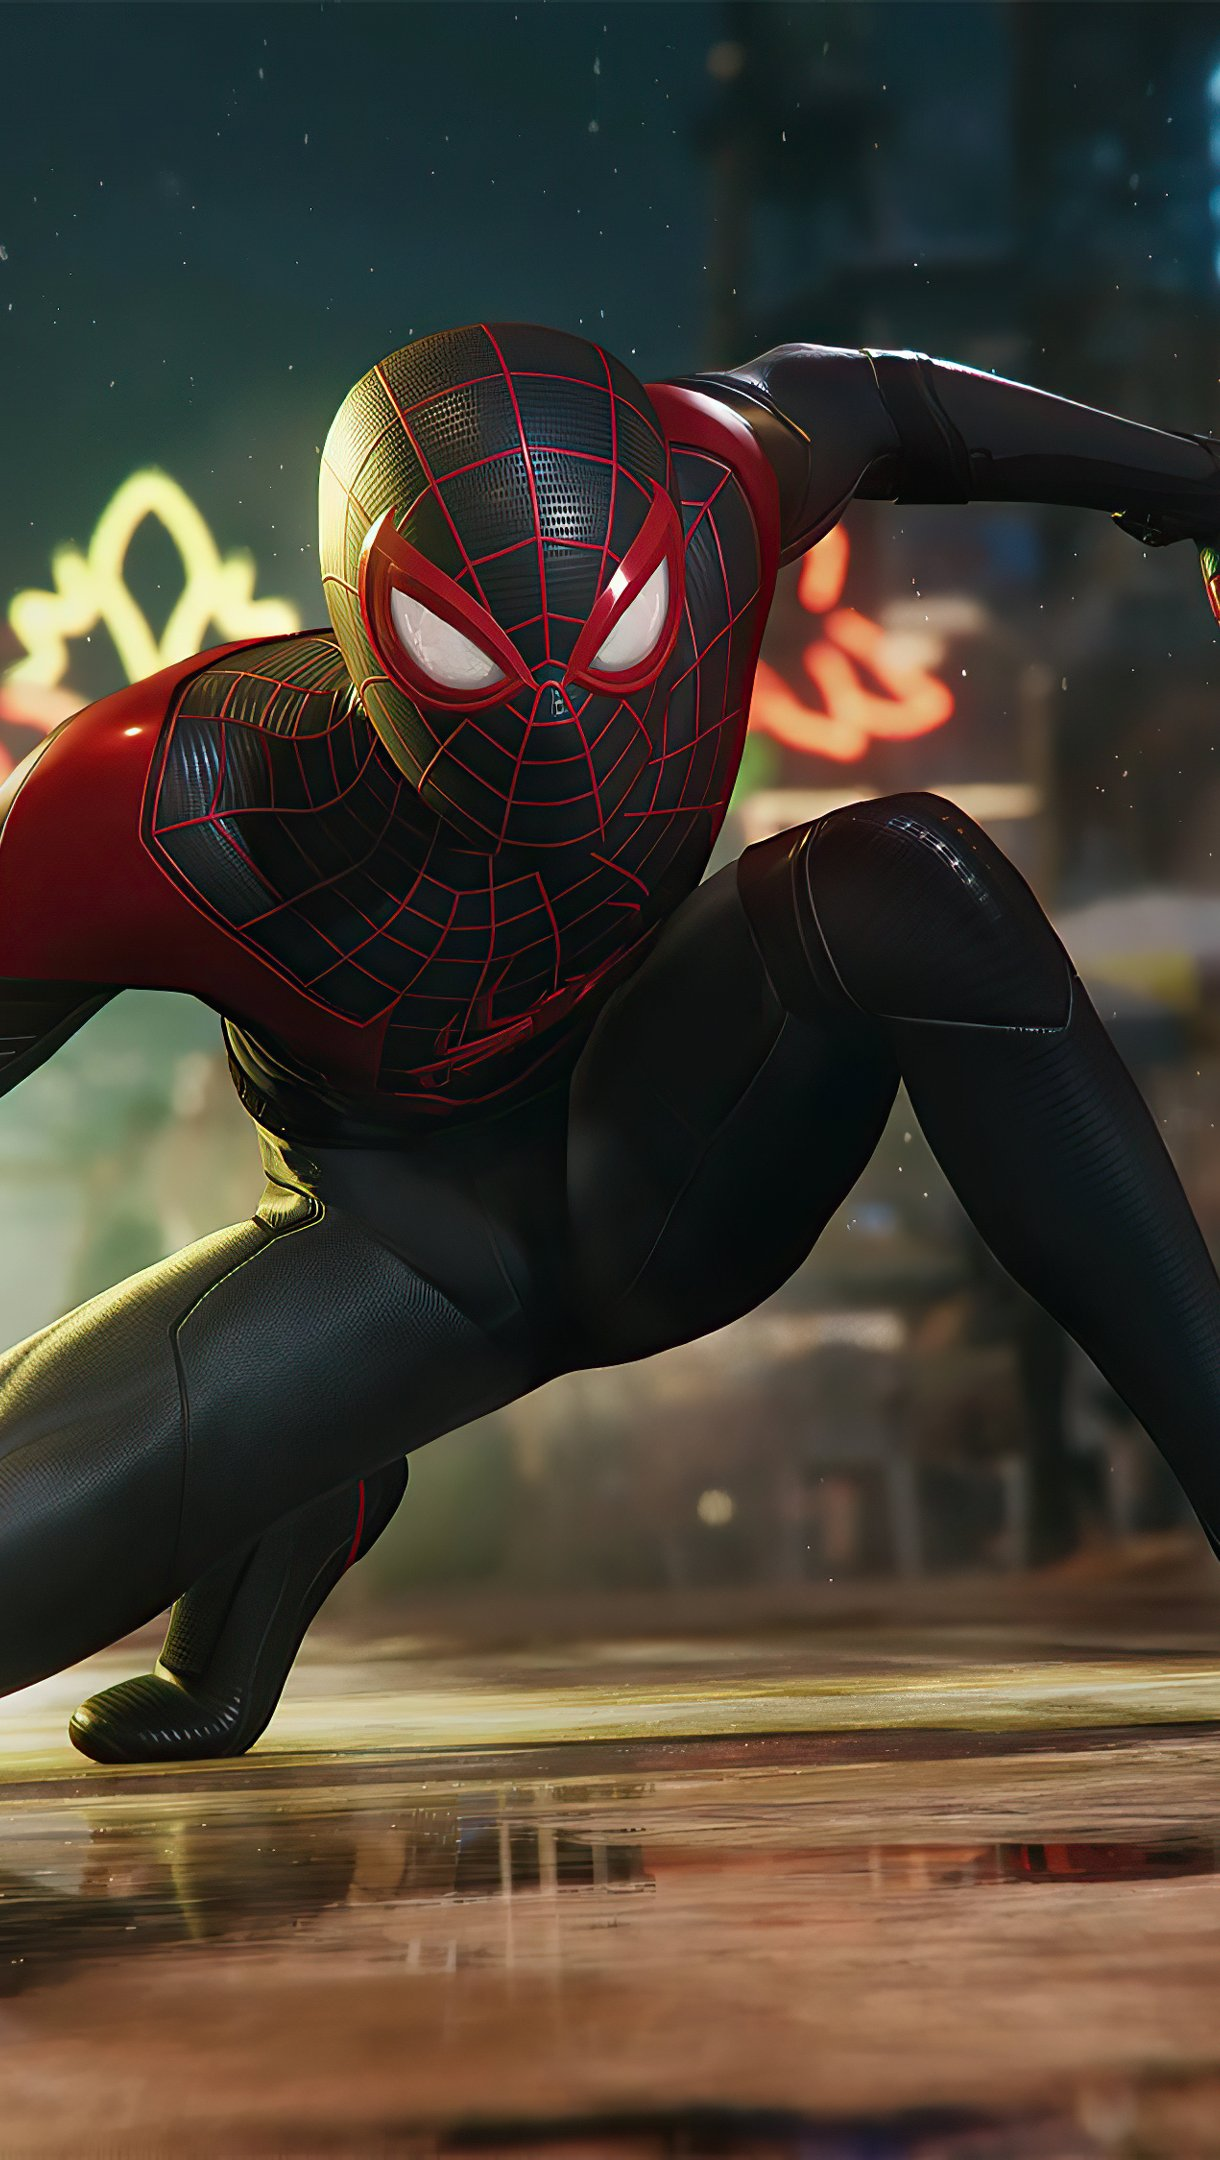 Wallpaper Miles Morales as Spiderman in the city Vertical